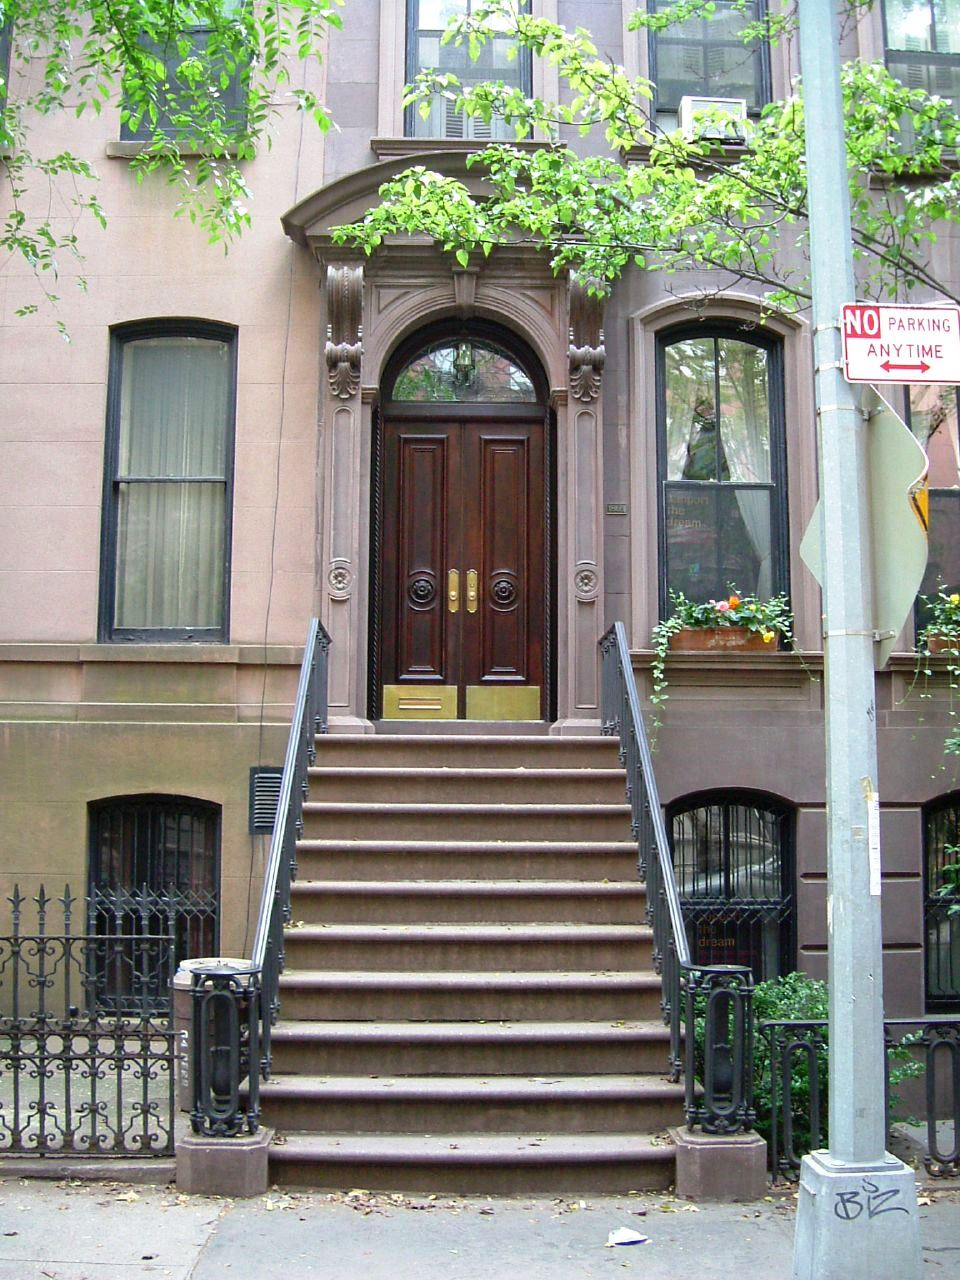 66_Perry_Street_Carrie_Bradshaw's_House_From_Sex_And_The_City_(1149739647).jpg